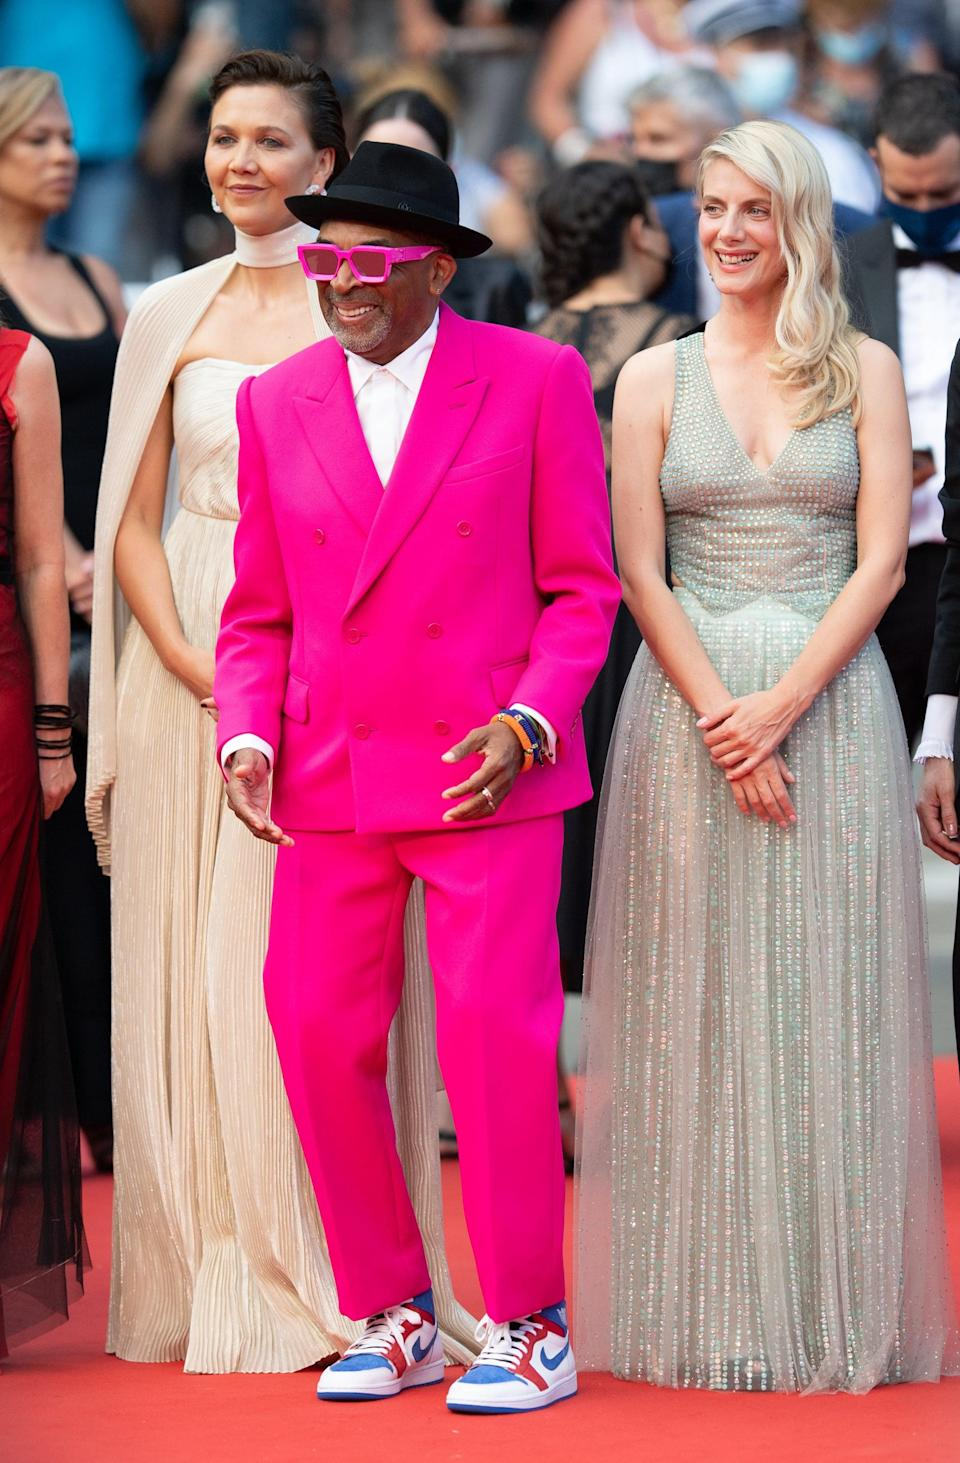 <p>Wearing a pink Louis Vuitton suit with Nikes.</p>